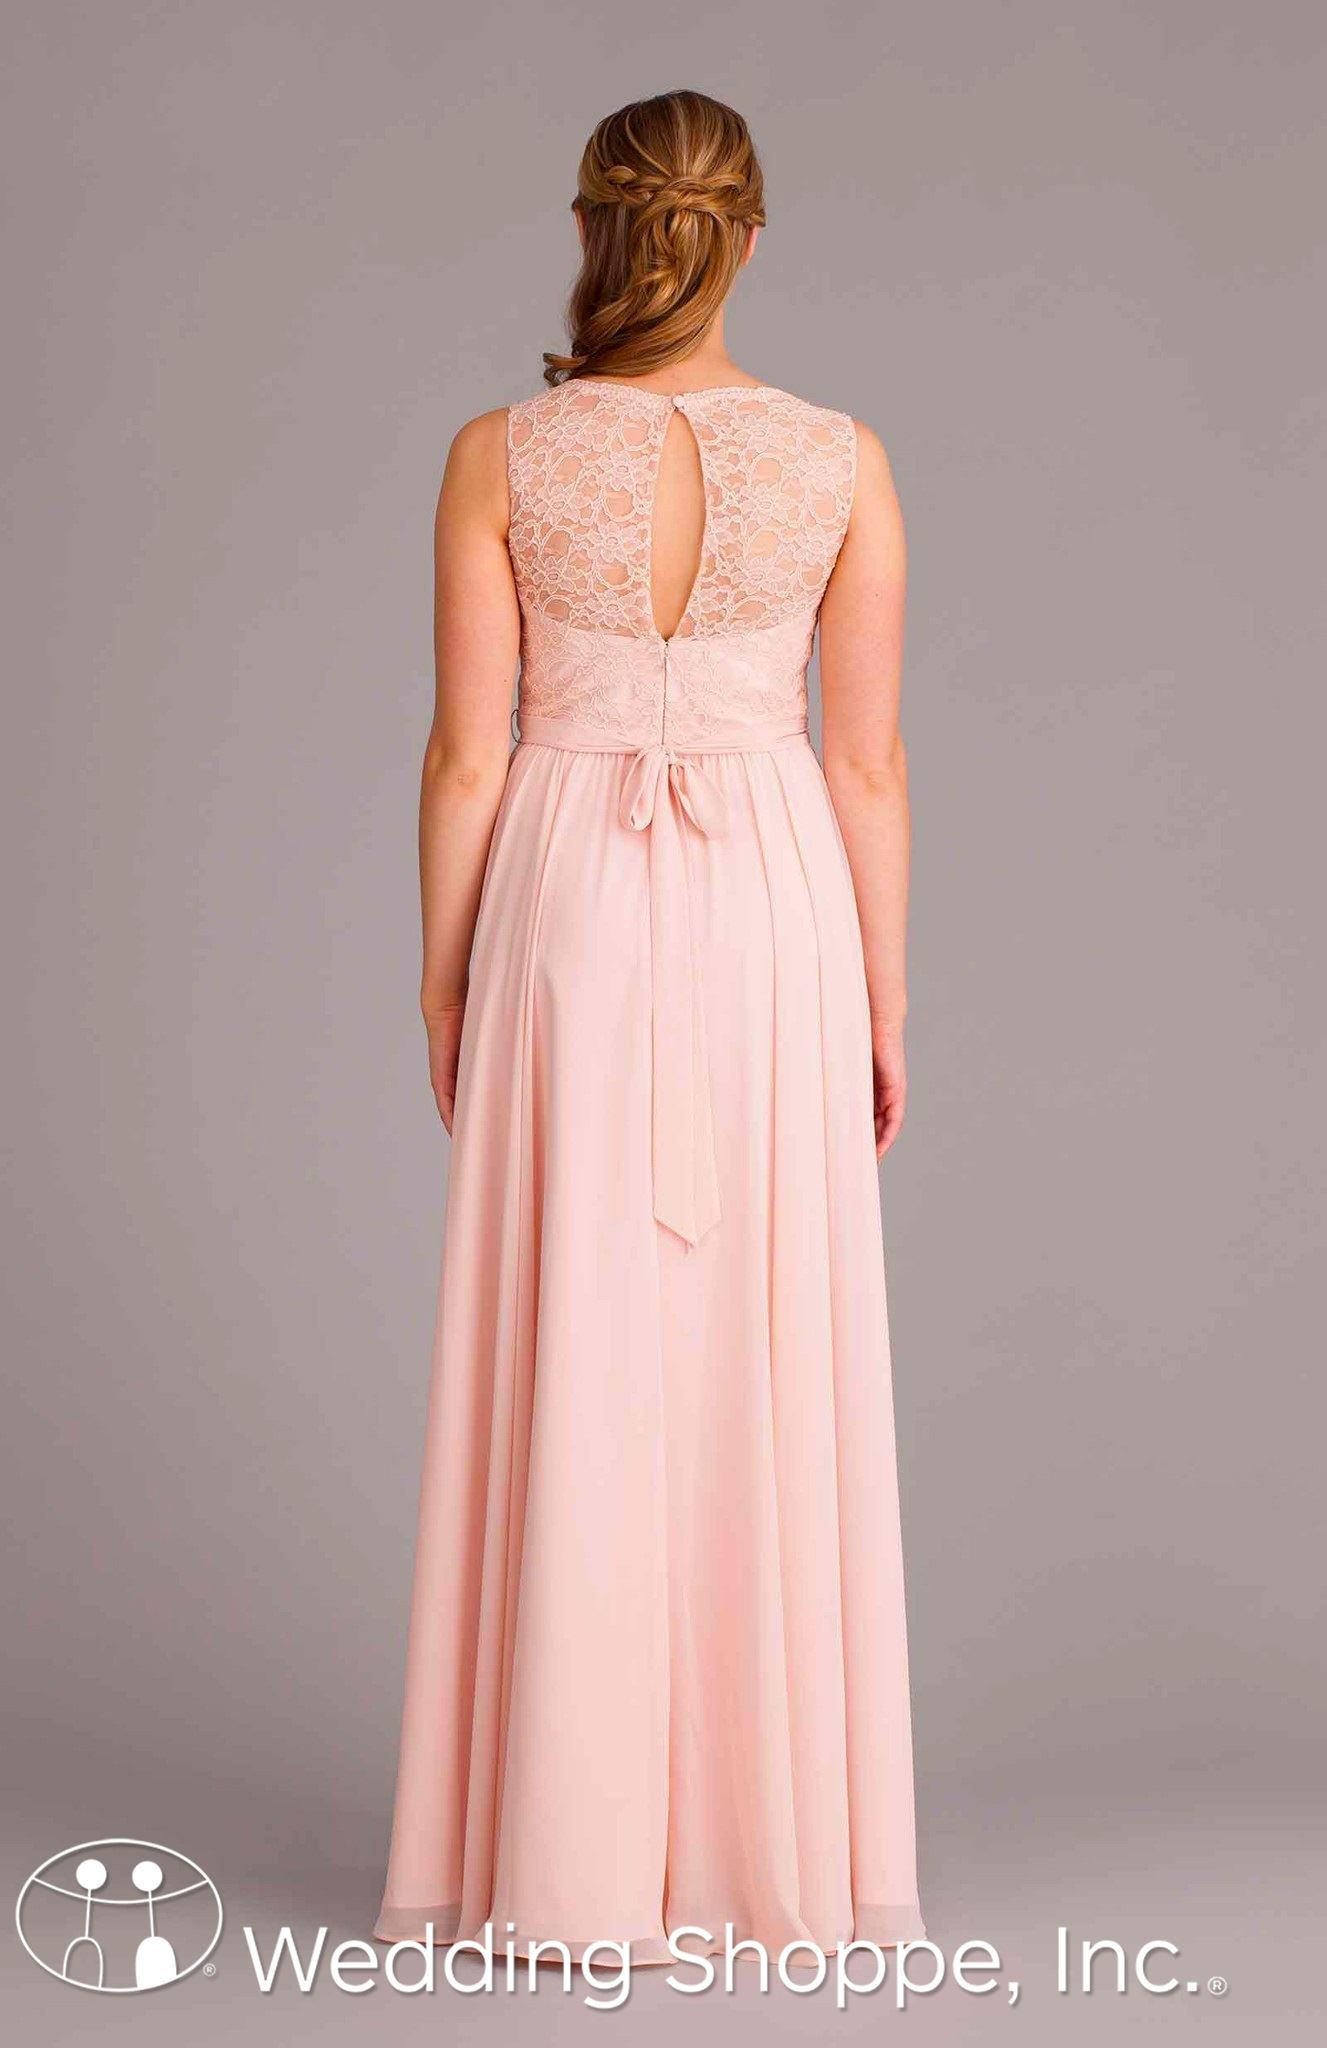 Kennedy Blue Bridesmaid Dress Sadie / 28208 | wedding | Pinterest